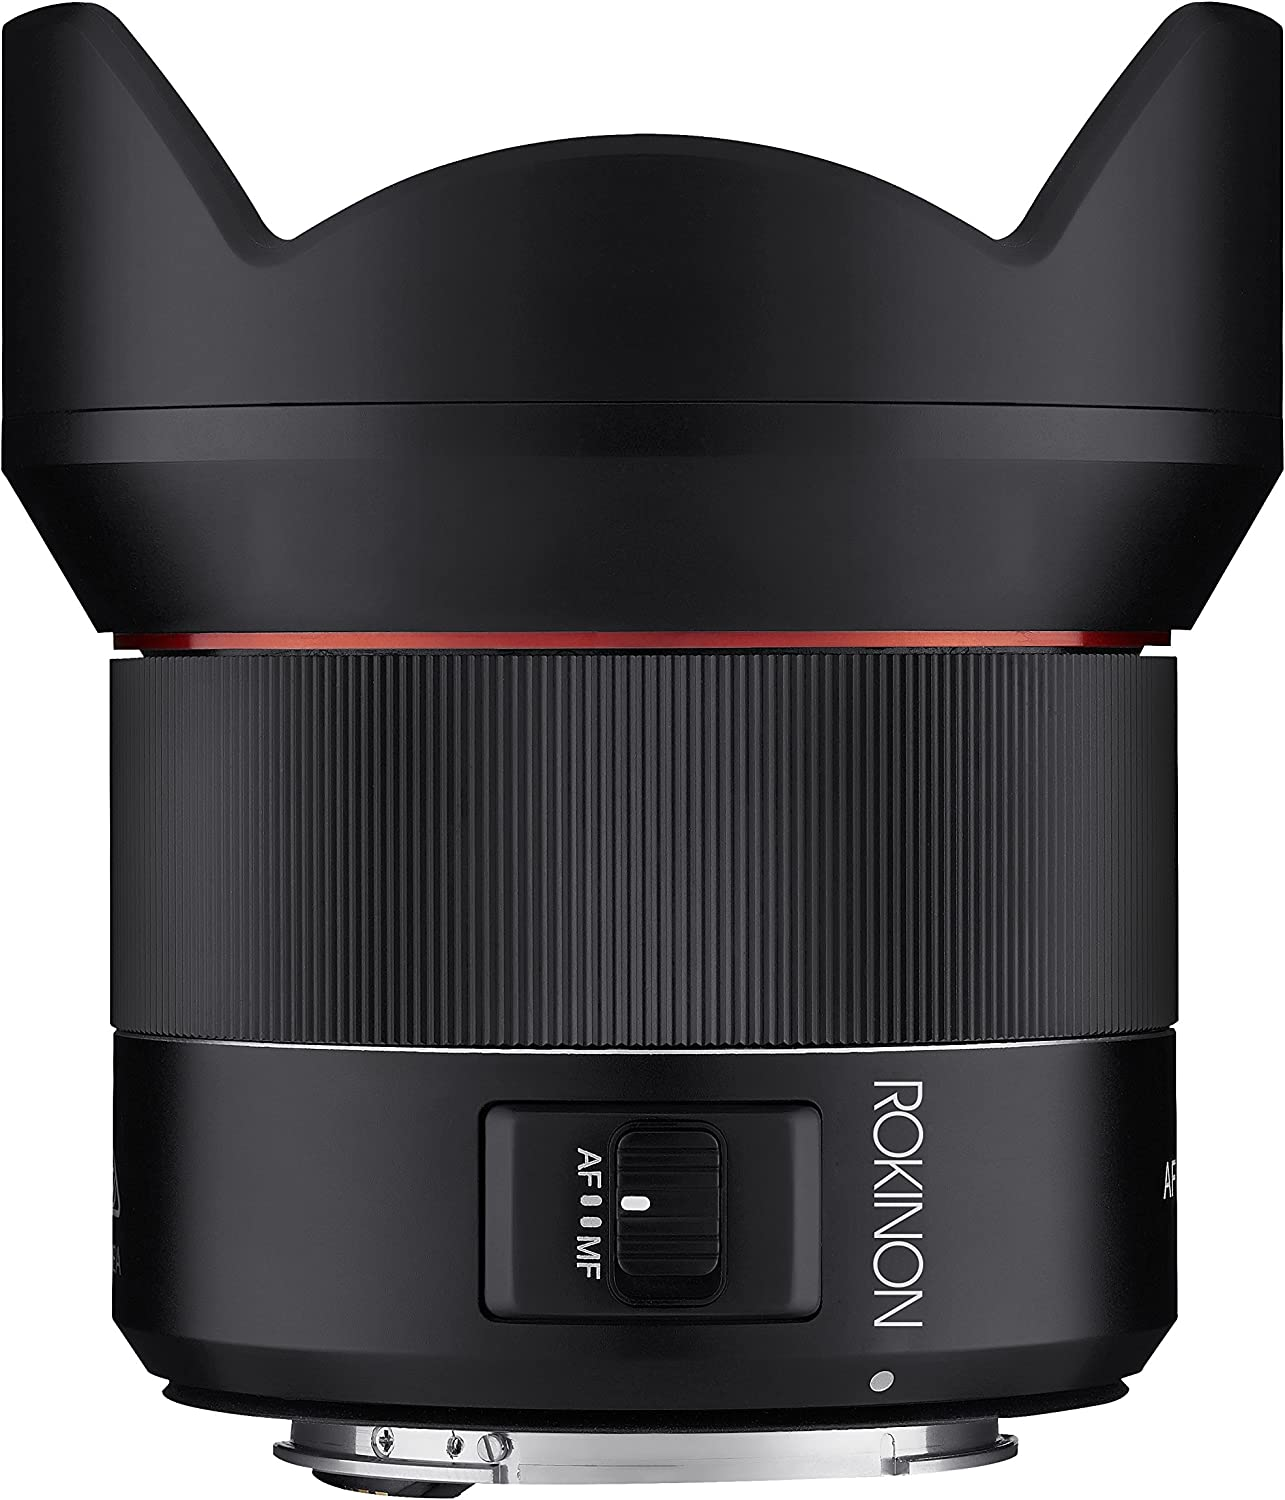 Black IO14AF-C Rokinon AF 14mm F2.8 Weather Sealed Auto Focus Wide Angle Lens for Canon EF